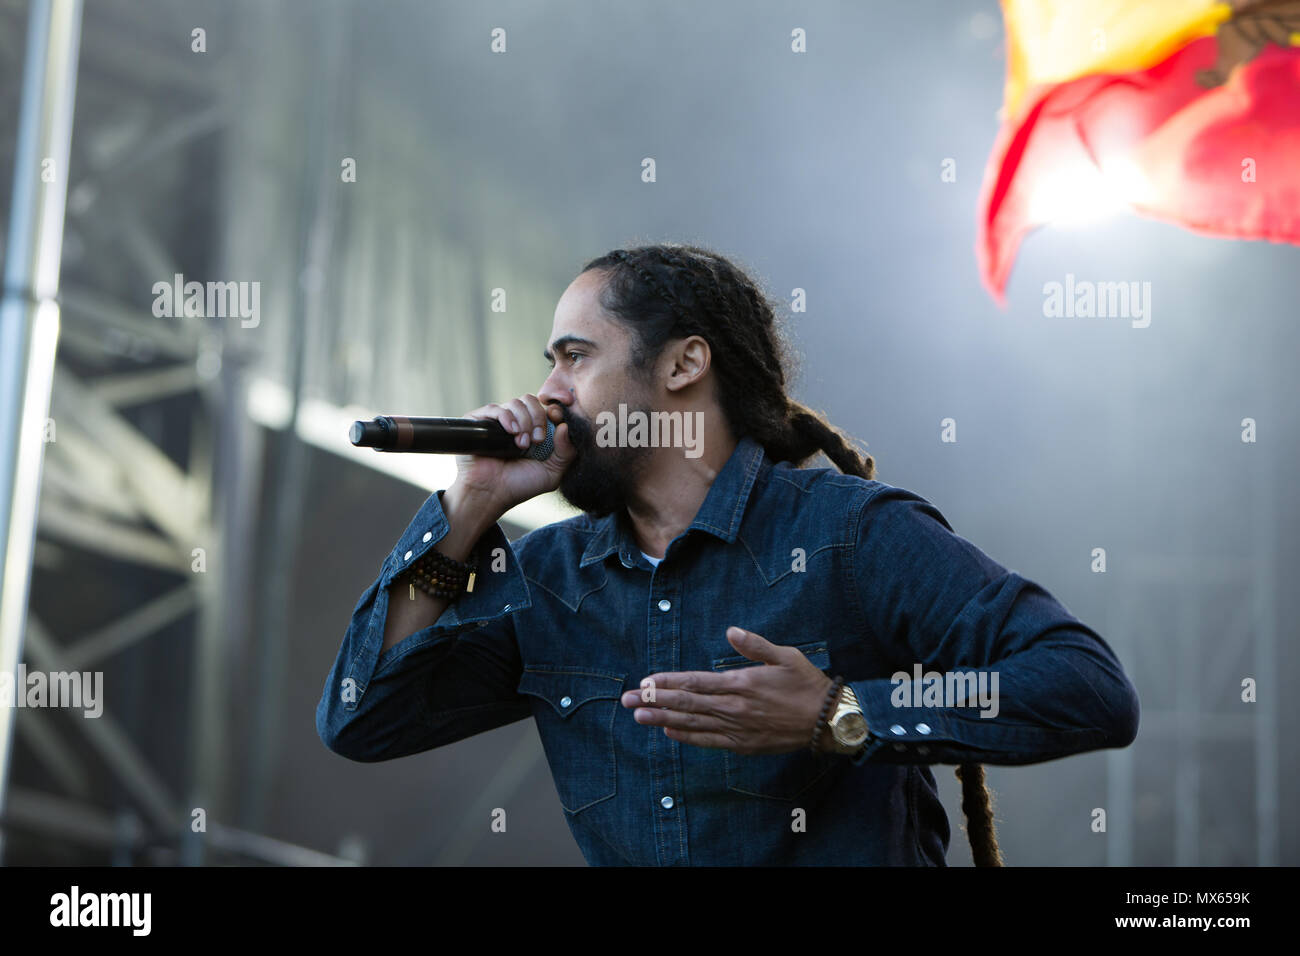 Toronto, Canada, 02nd June, 2018, Damian Marley, youngest son of